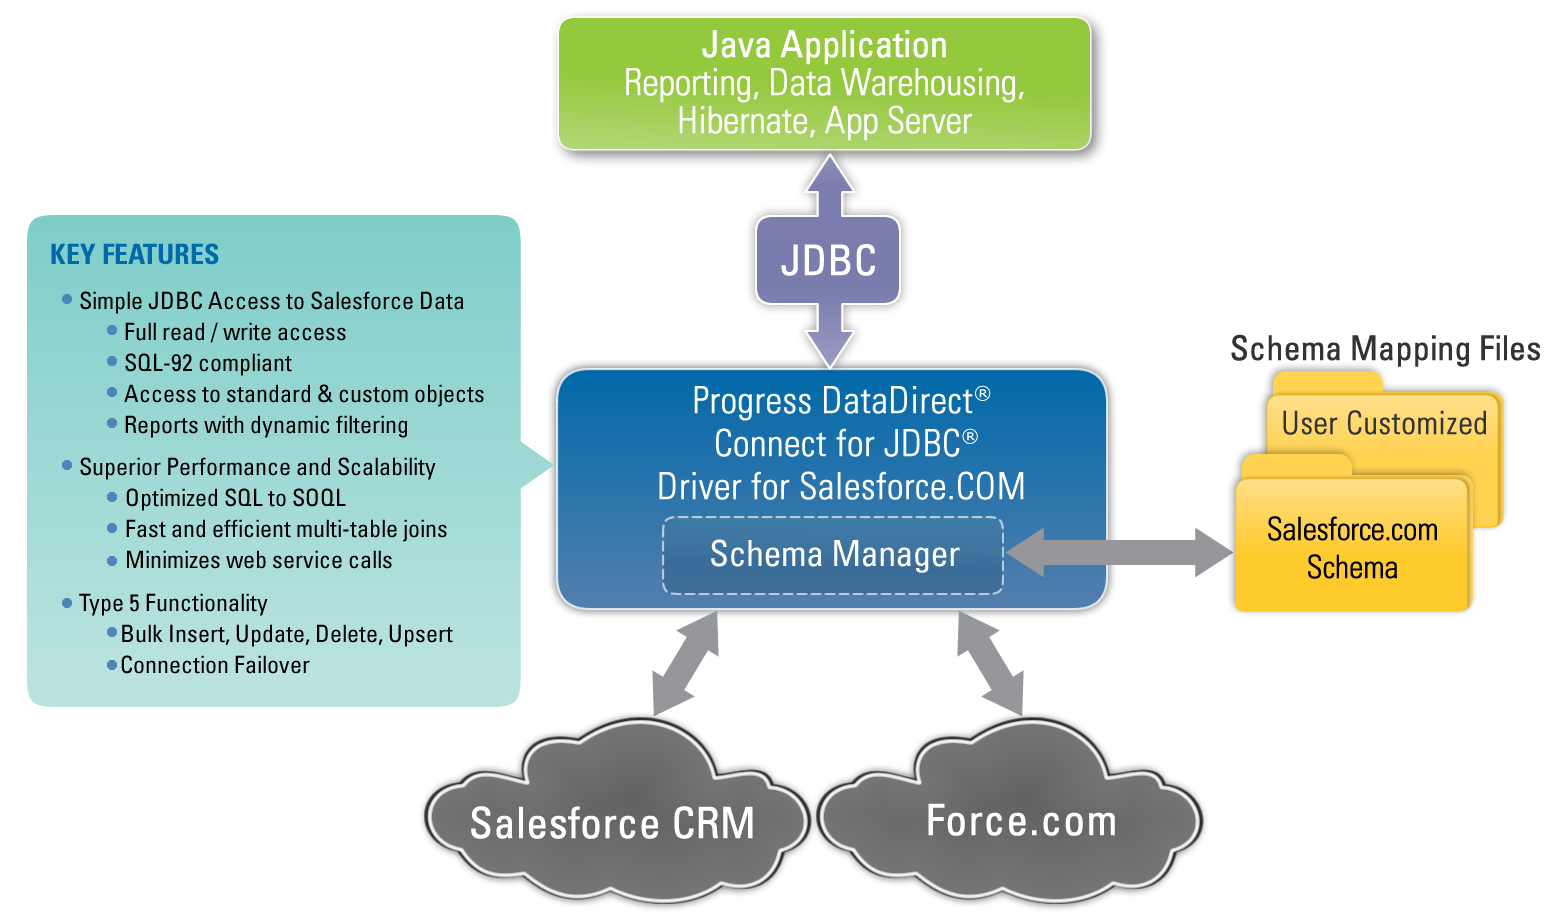 3 PROGRESS DATADIRECT CONNECT TYPE 5 JDBC ACCESS TO CLOUD DATA The Progress DataDirect Connect XE for JDBC Salesforce Driver enables access to business-critical cloud data via SQL and JDBC.